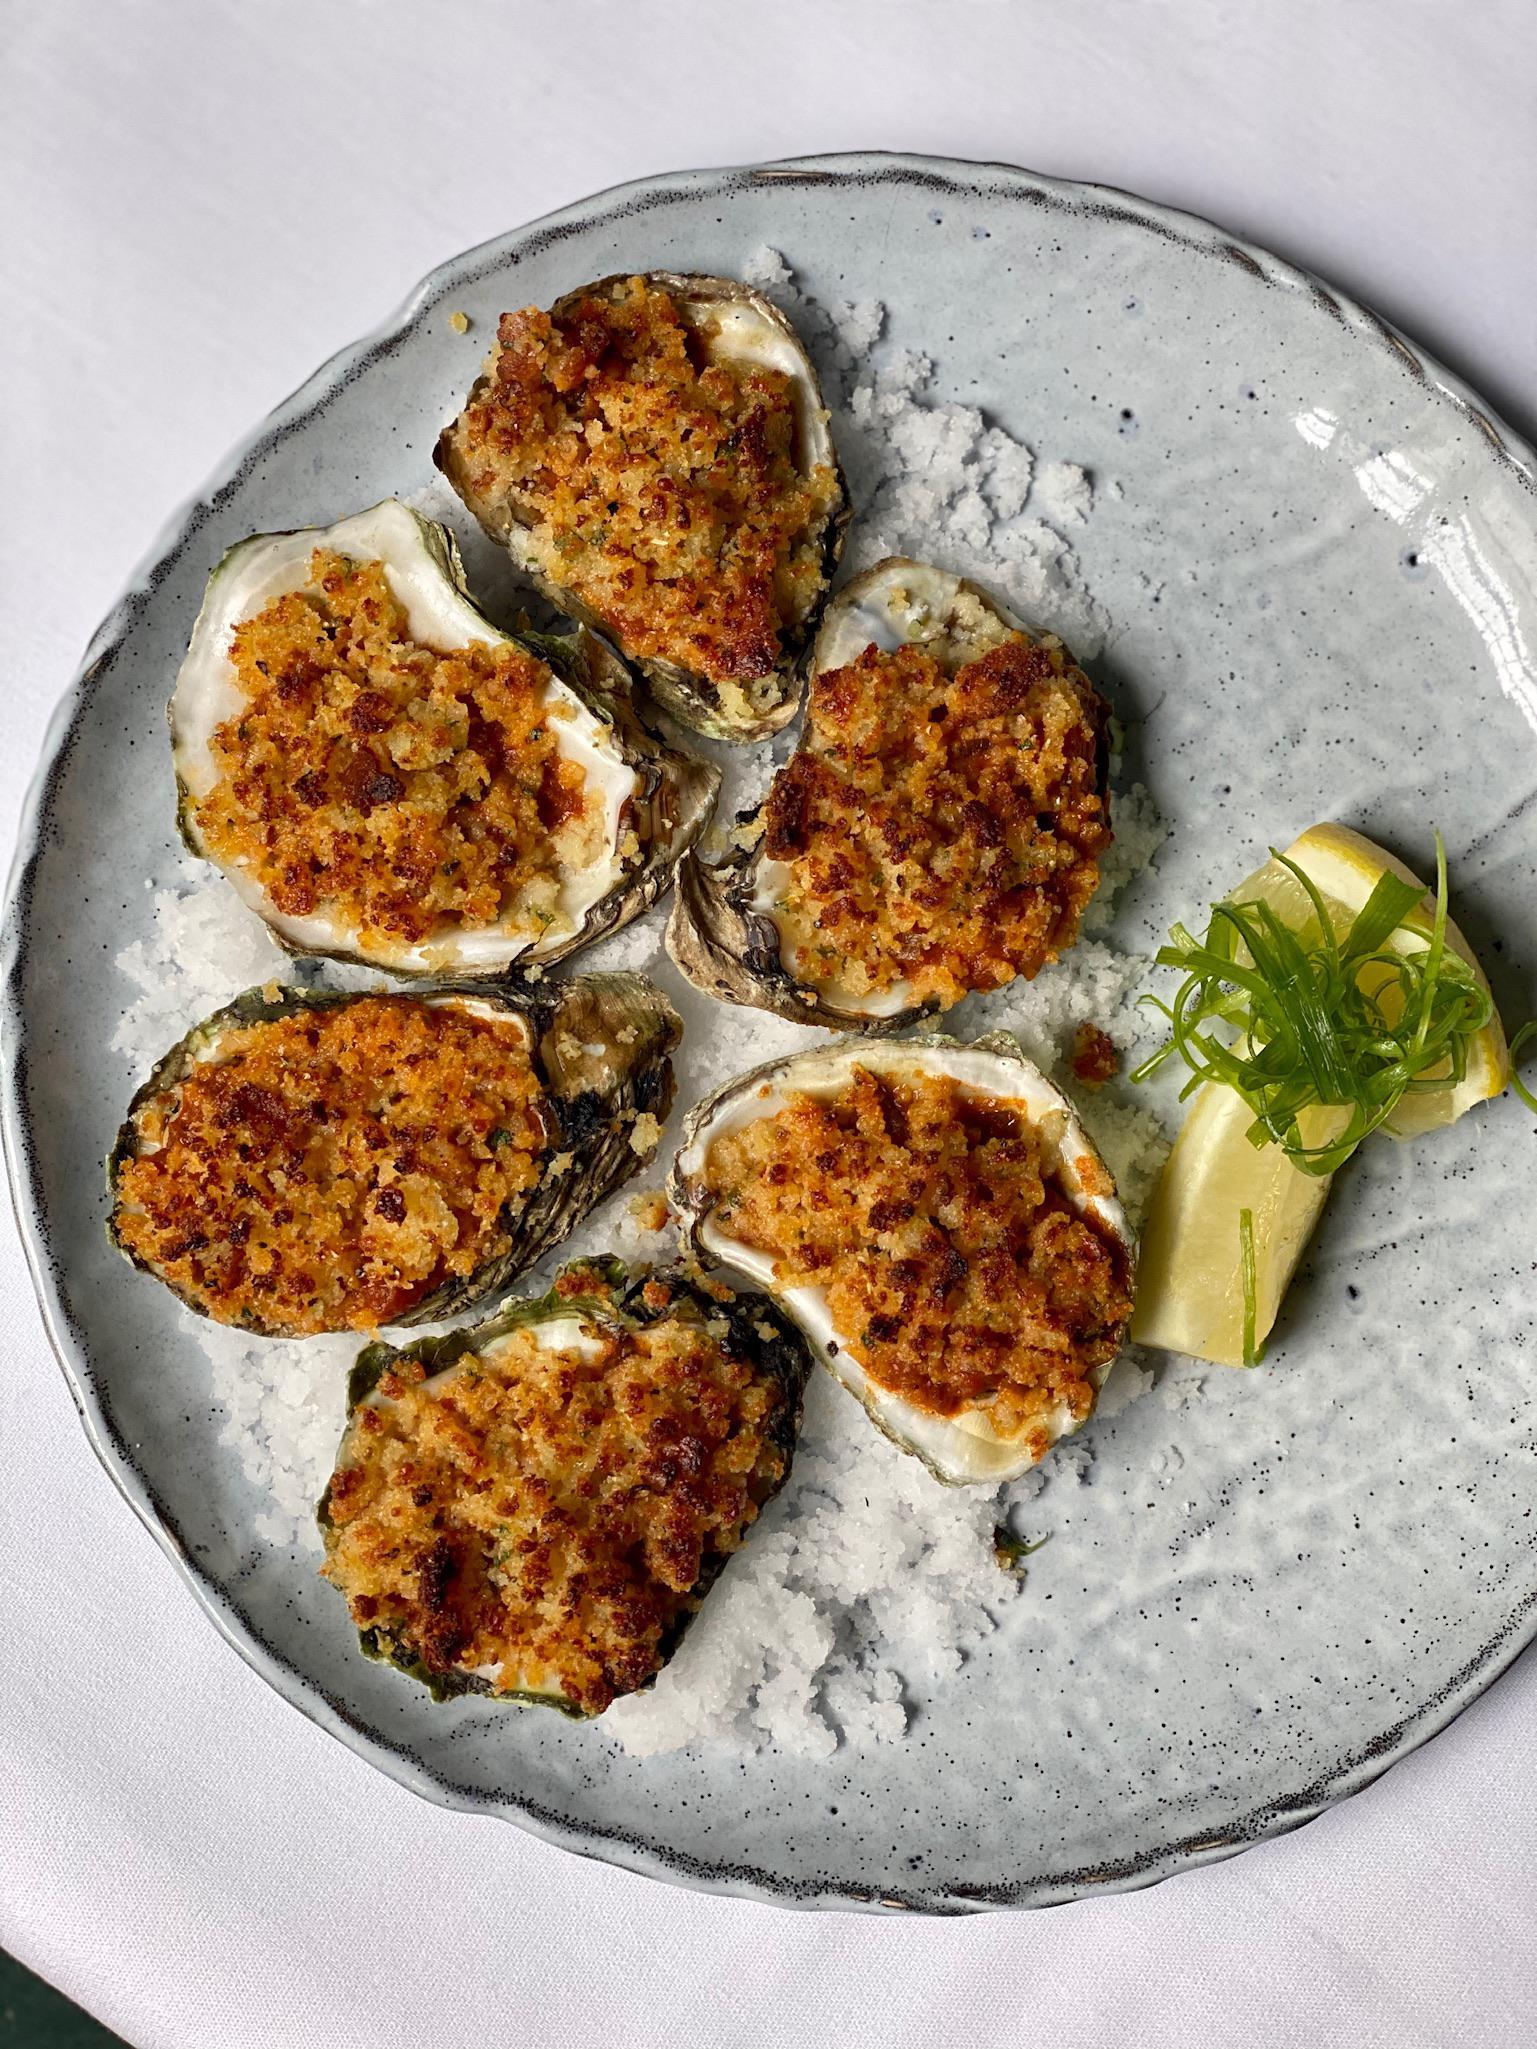 Oysters J'aime Photo